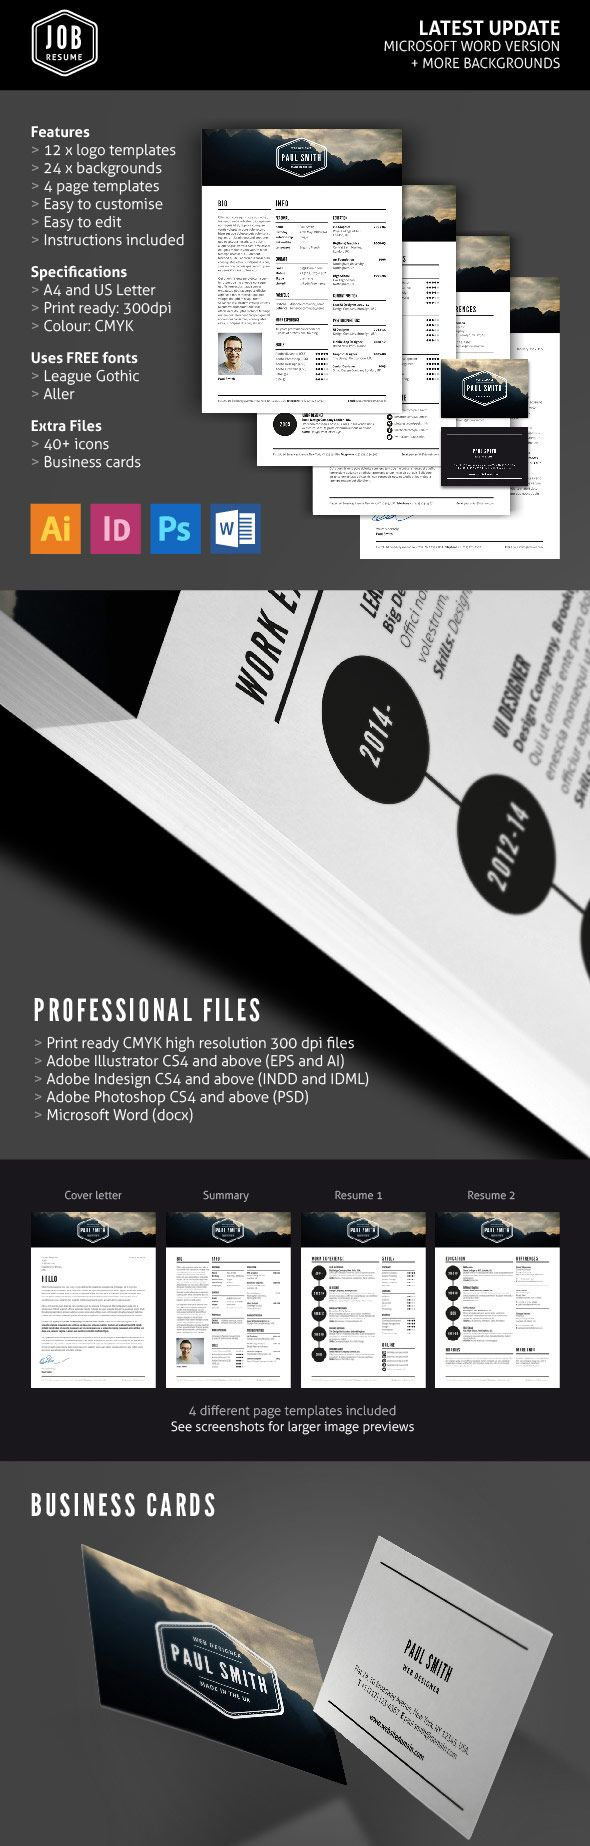 Job Resume Template Set With Logos Business